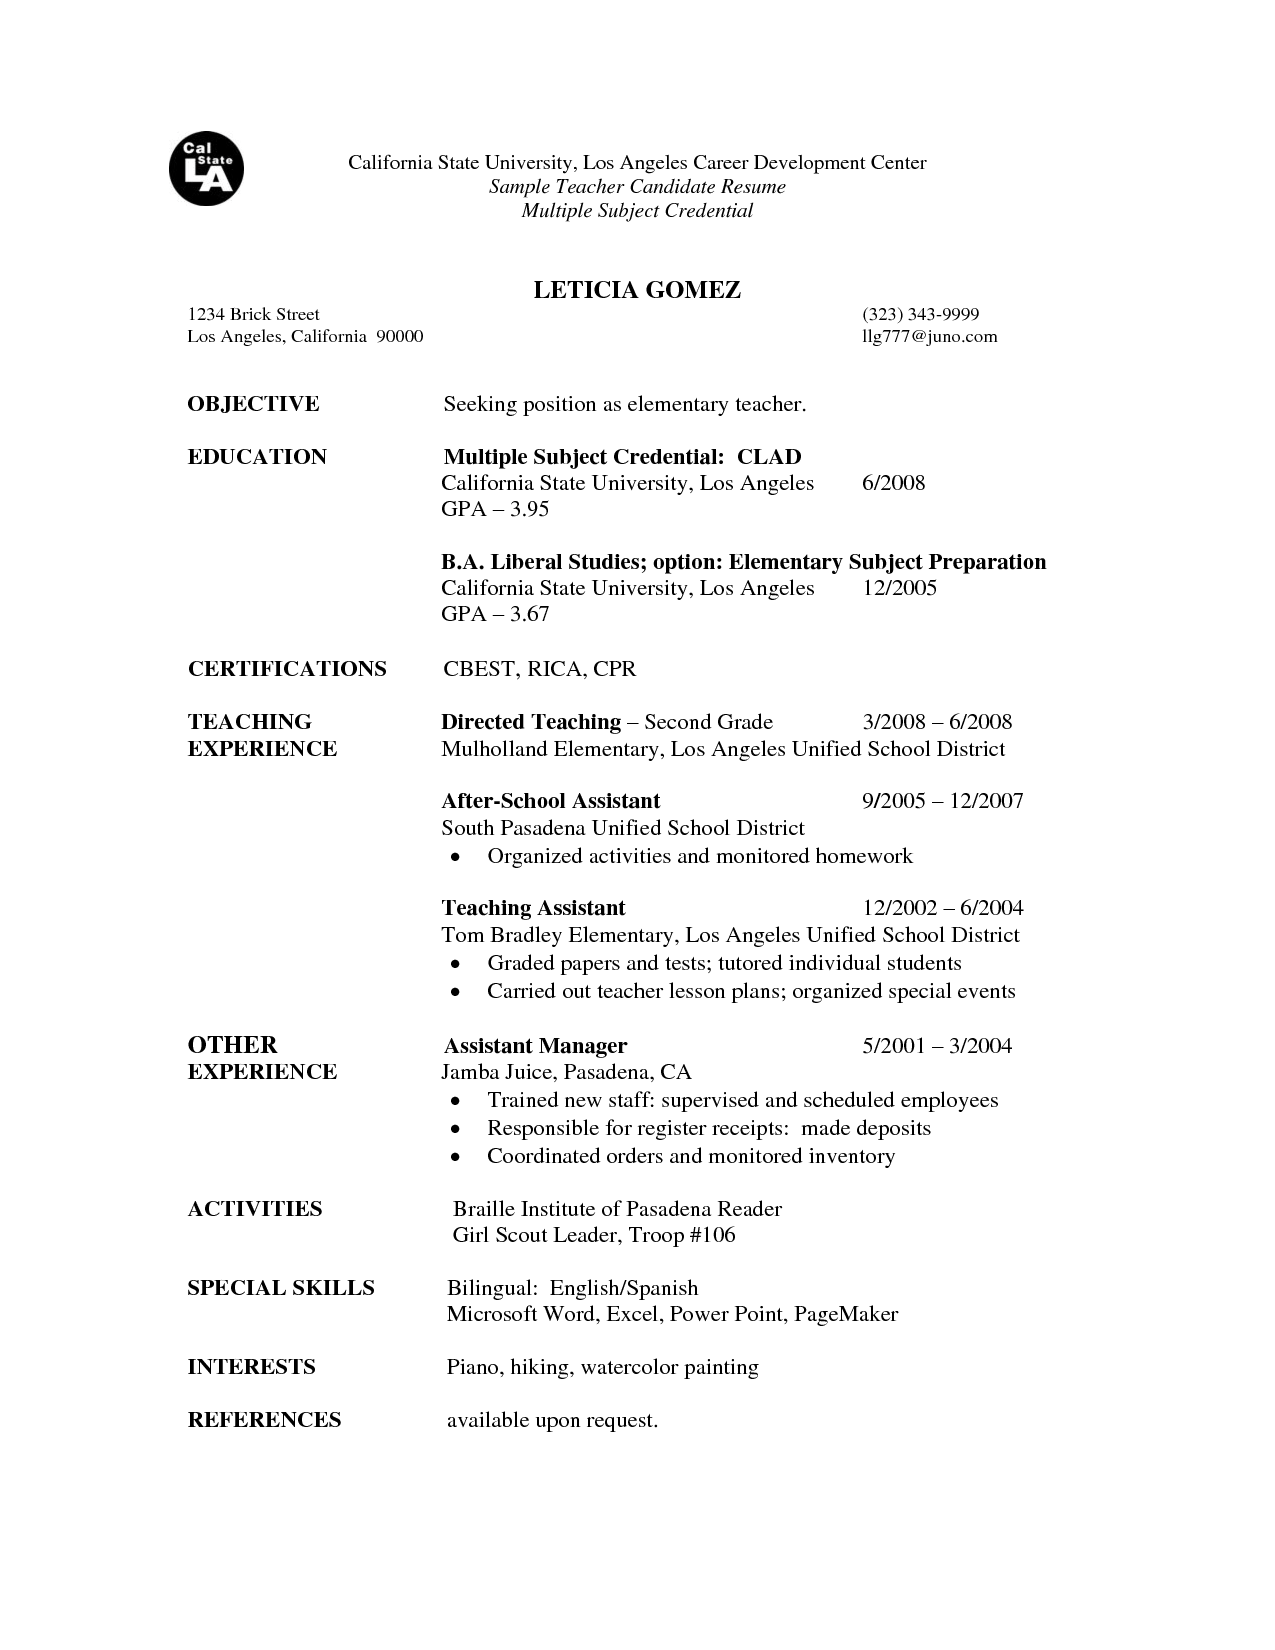 Resume Format Microsoft Word Fascinating Image Result For First Resume For Teacher  Resume  Pinterest Design Decoration